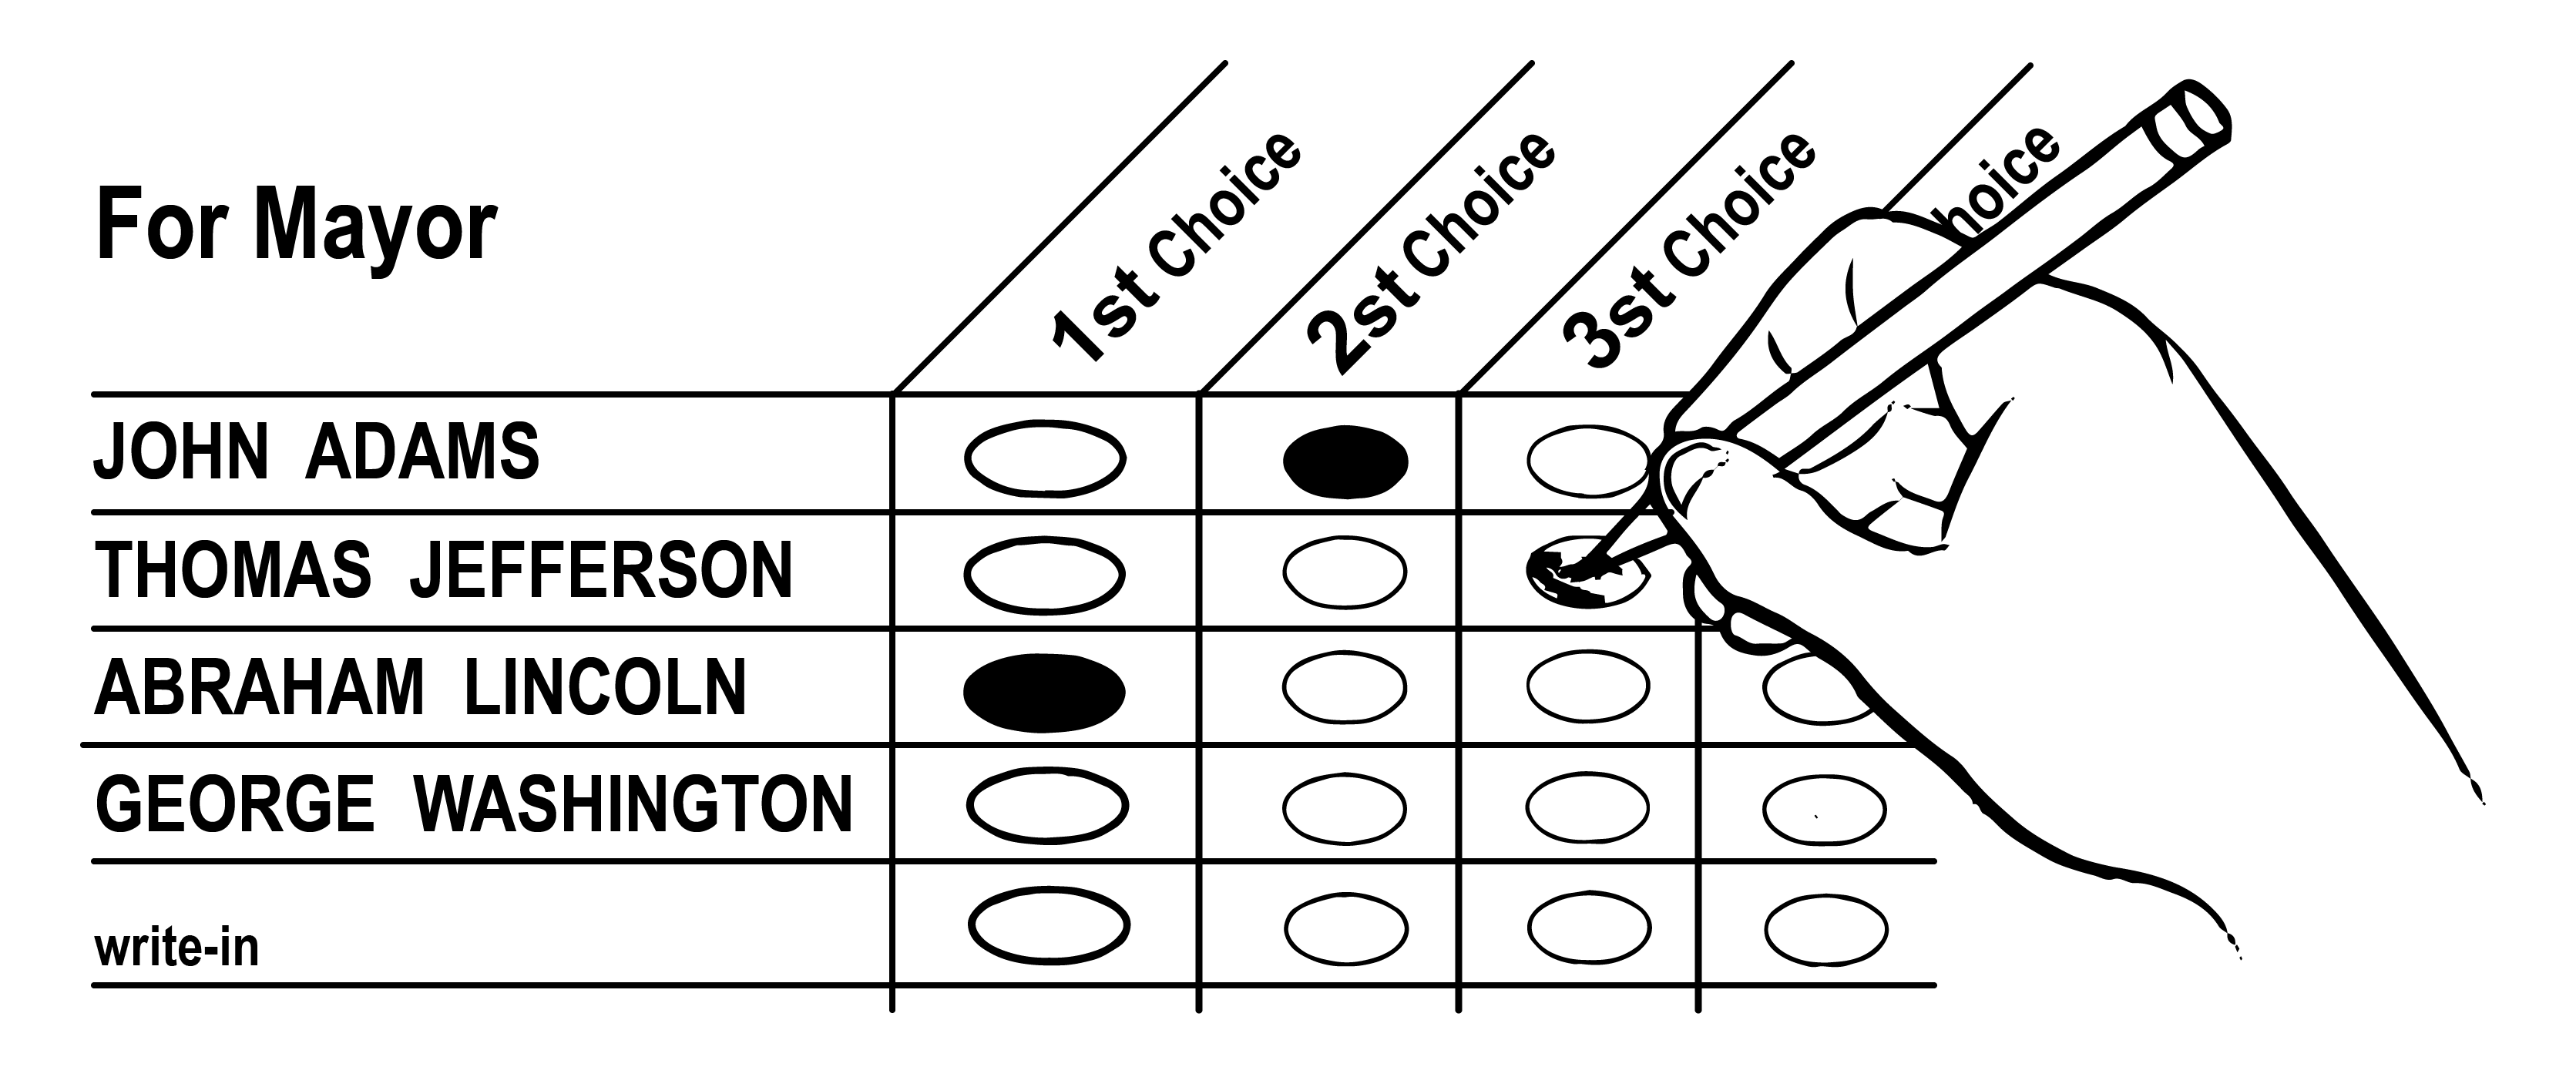 America and Connecticut need Ranked Choice Voting